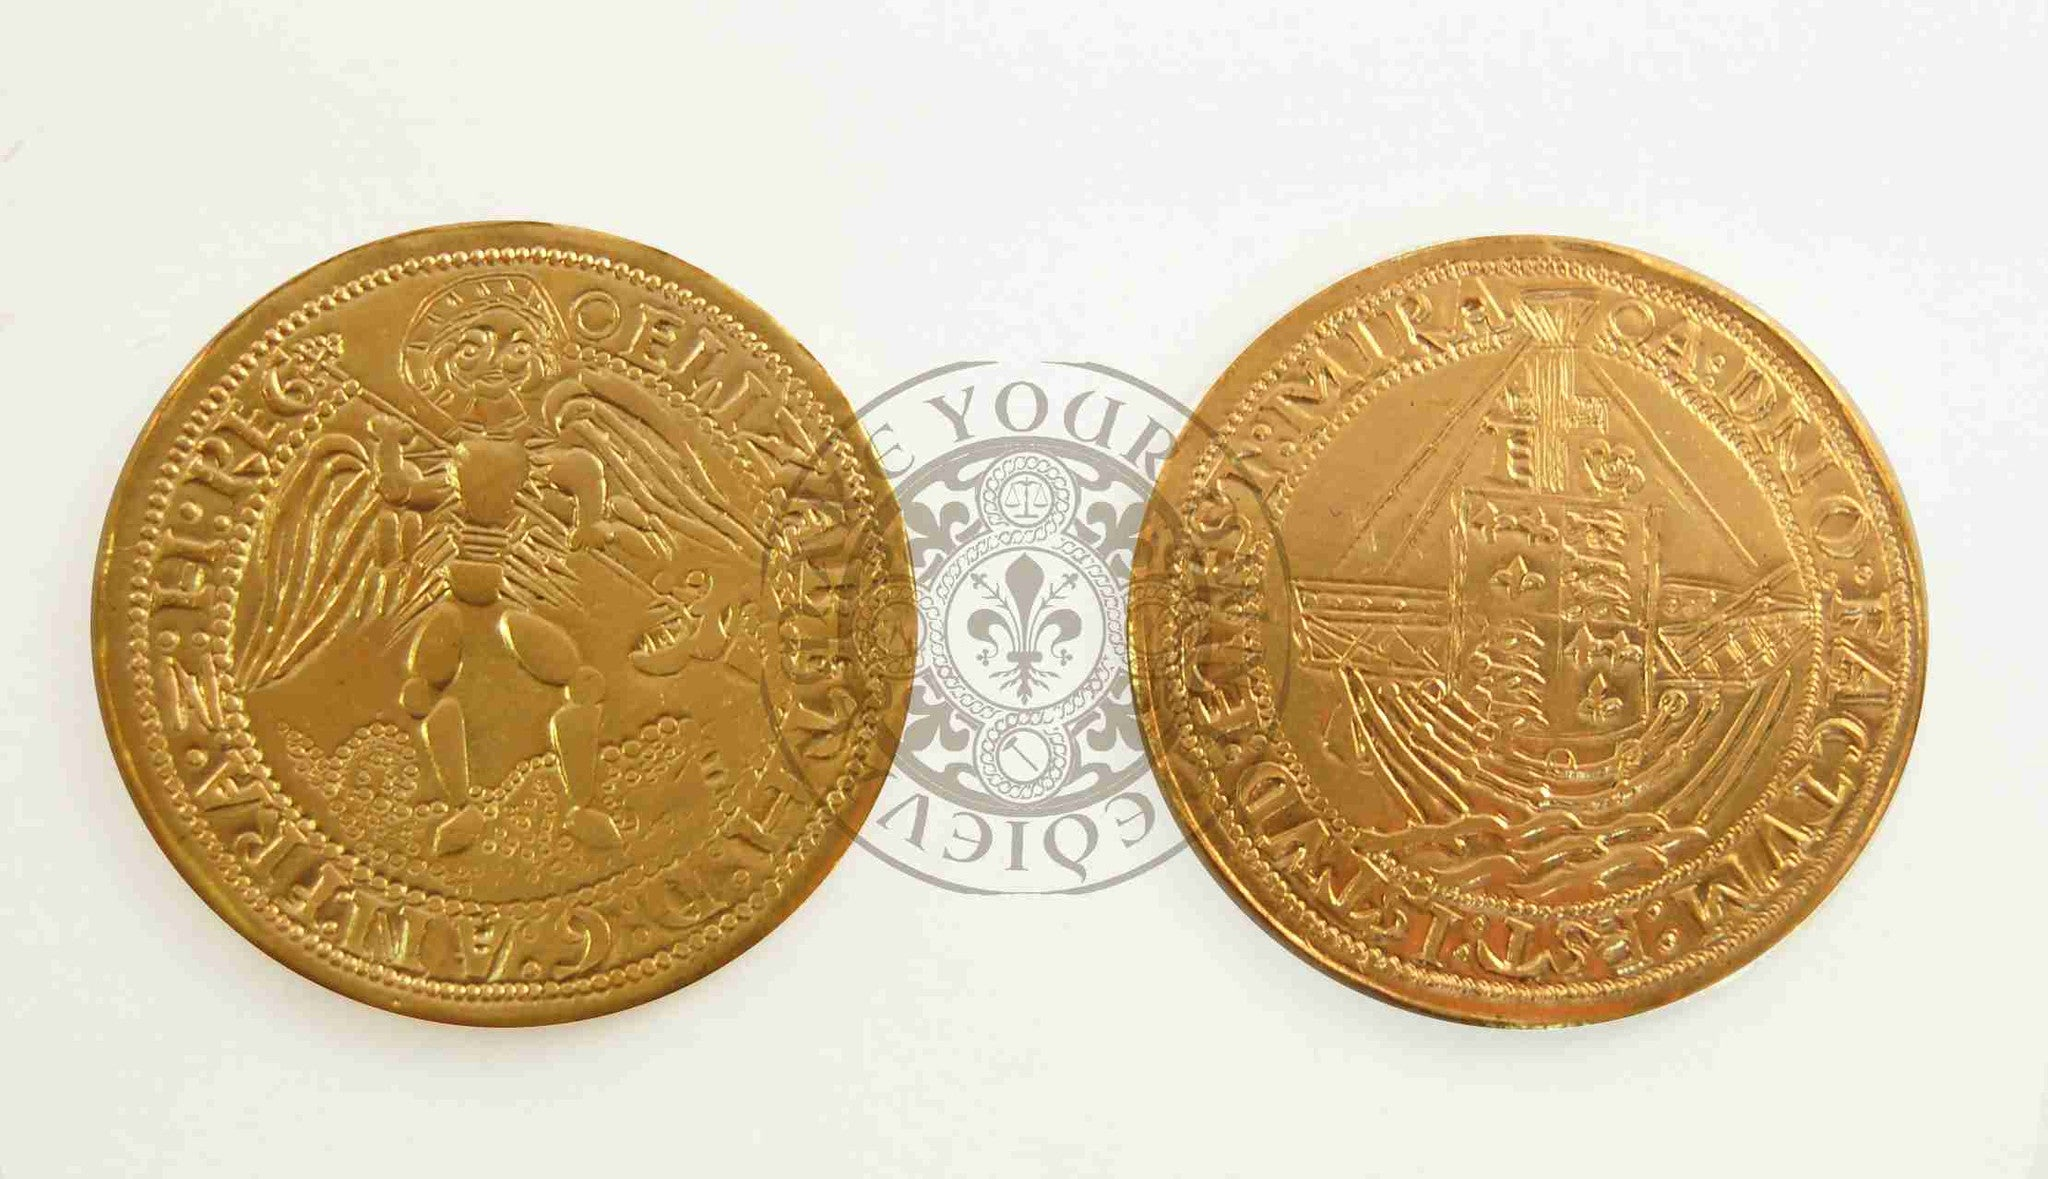 Tudor gold angel coin minted by Elizabeth I reproduction